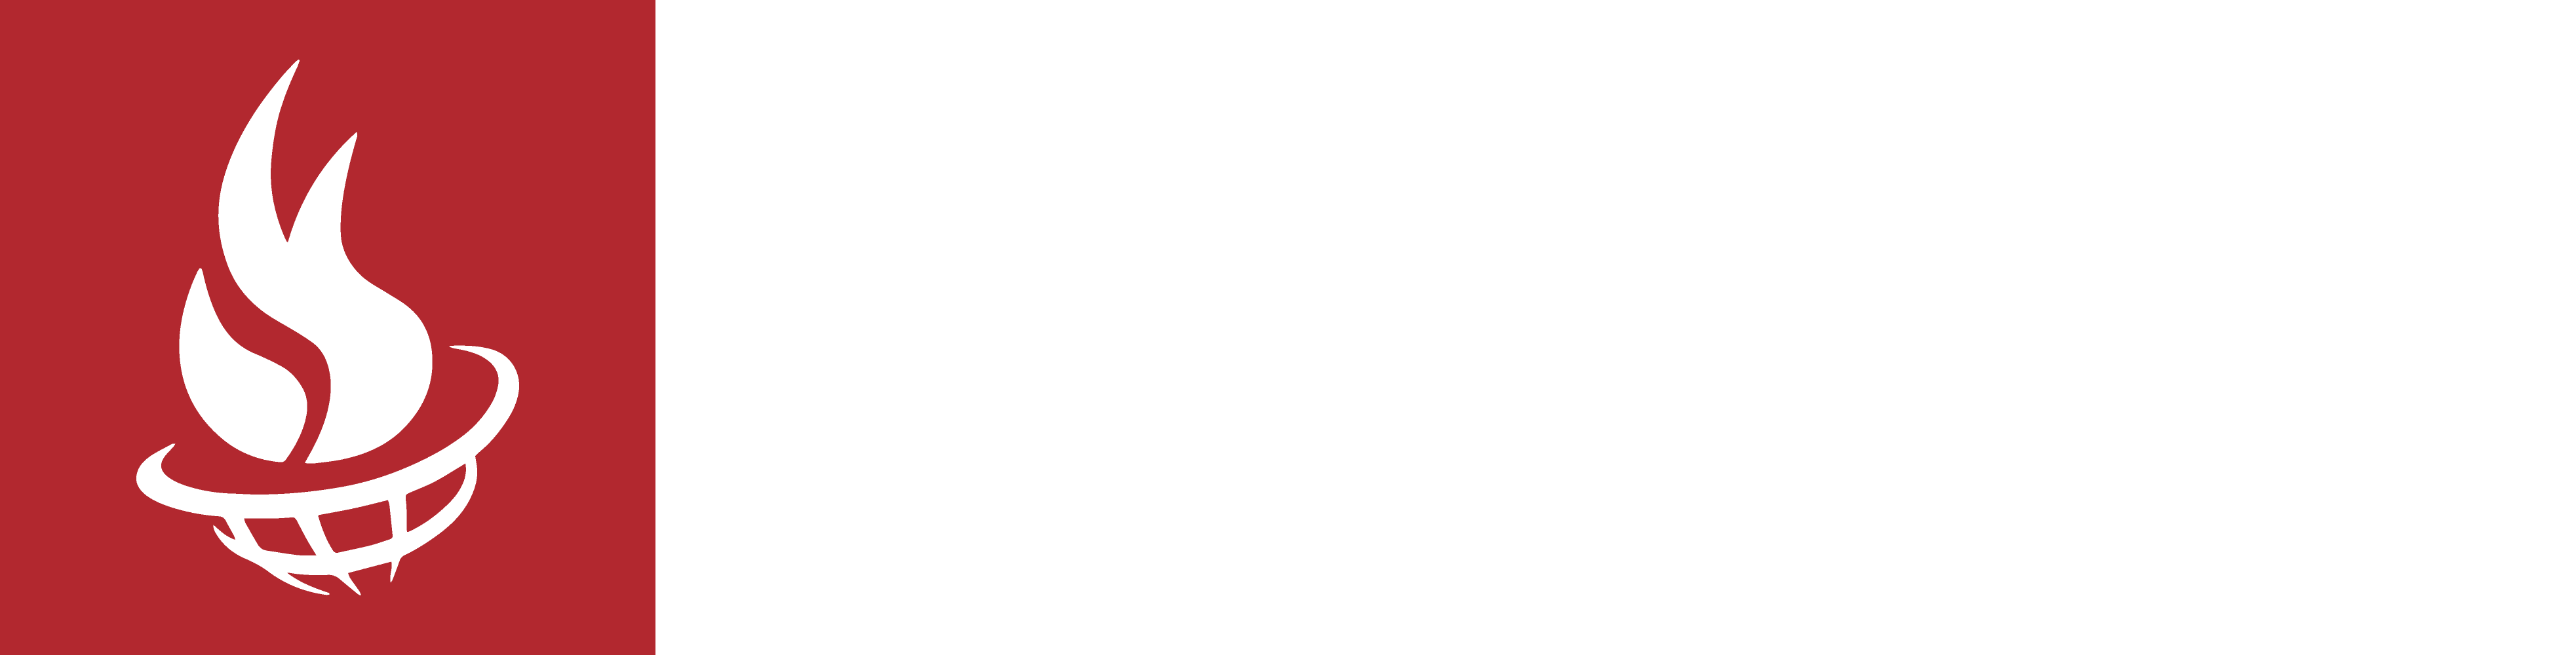 Missionary Church East Central Region | Dedicated to Partnering with the Church in Ohio to Represent the Gospel of Jesus to Every Man, Woman, and Child